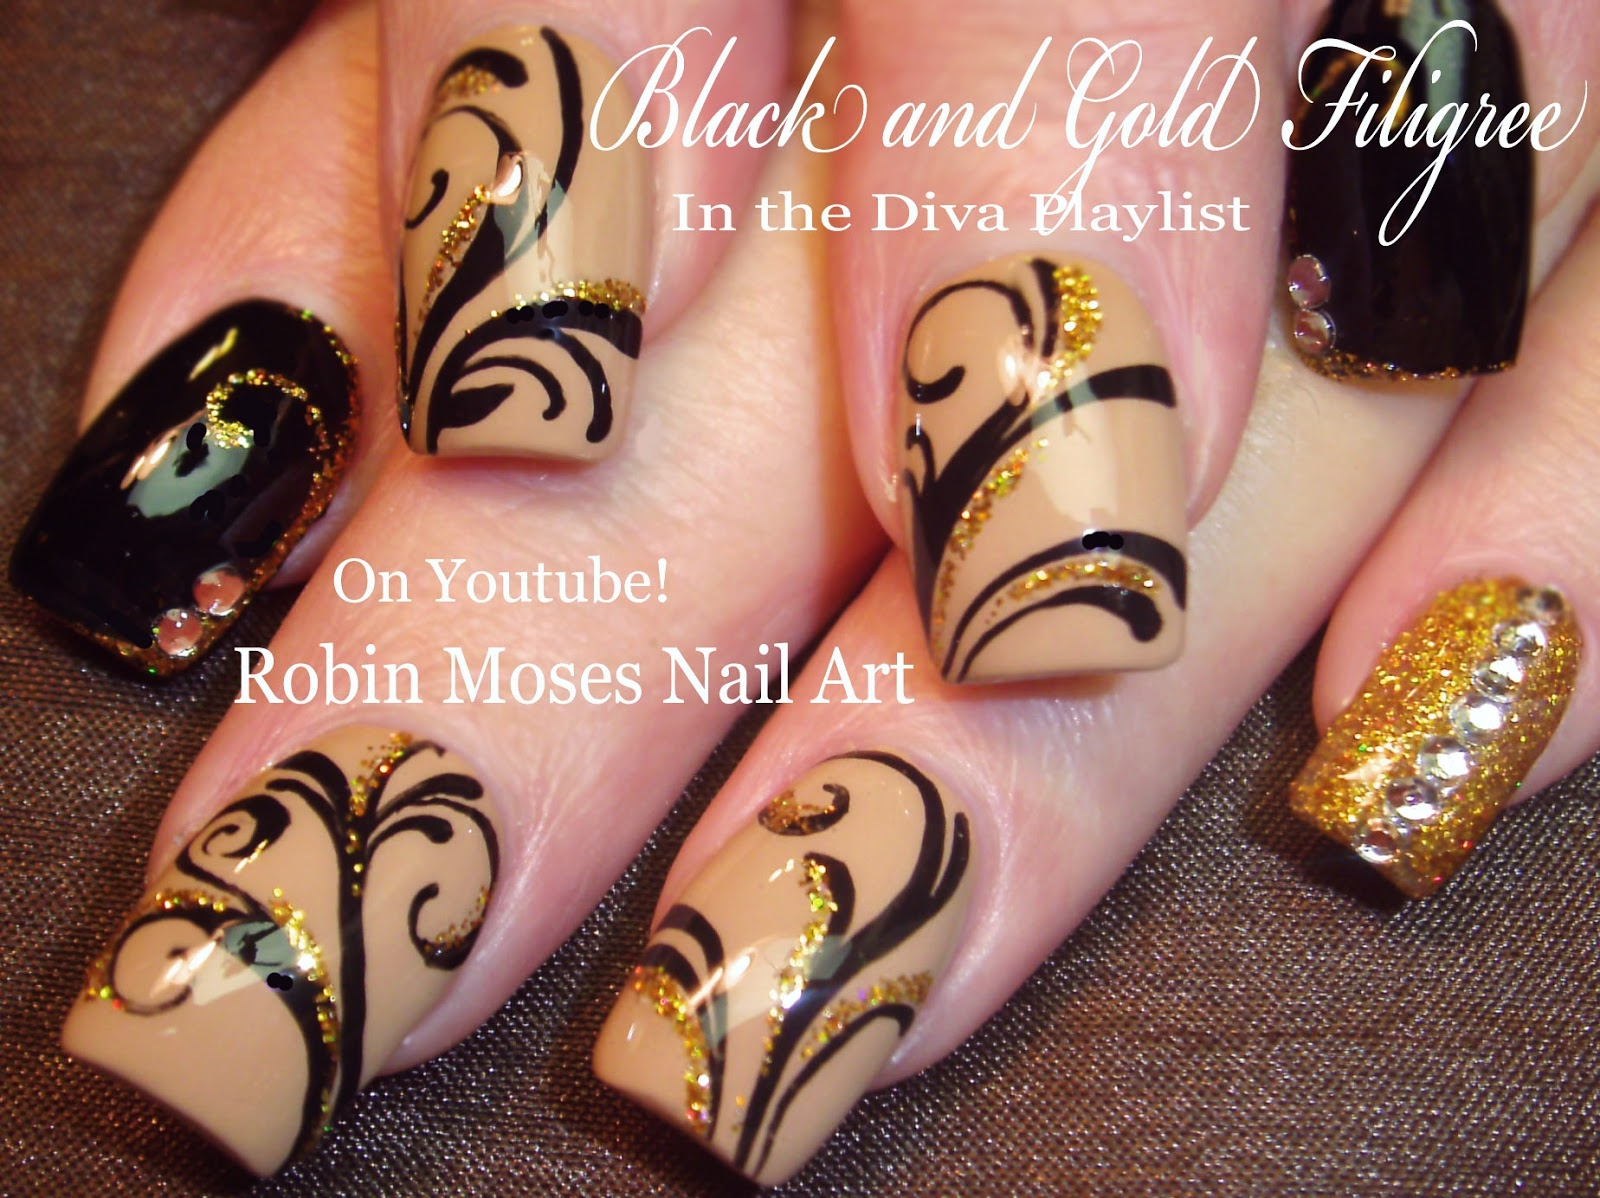 Nail Art by Robin Moses: Soft Tan with Black and Gold